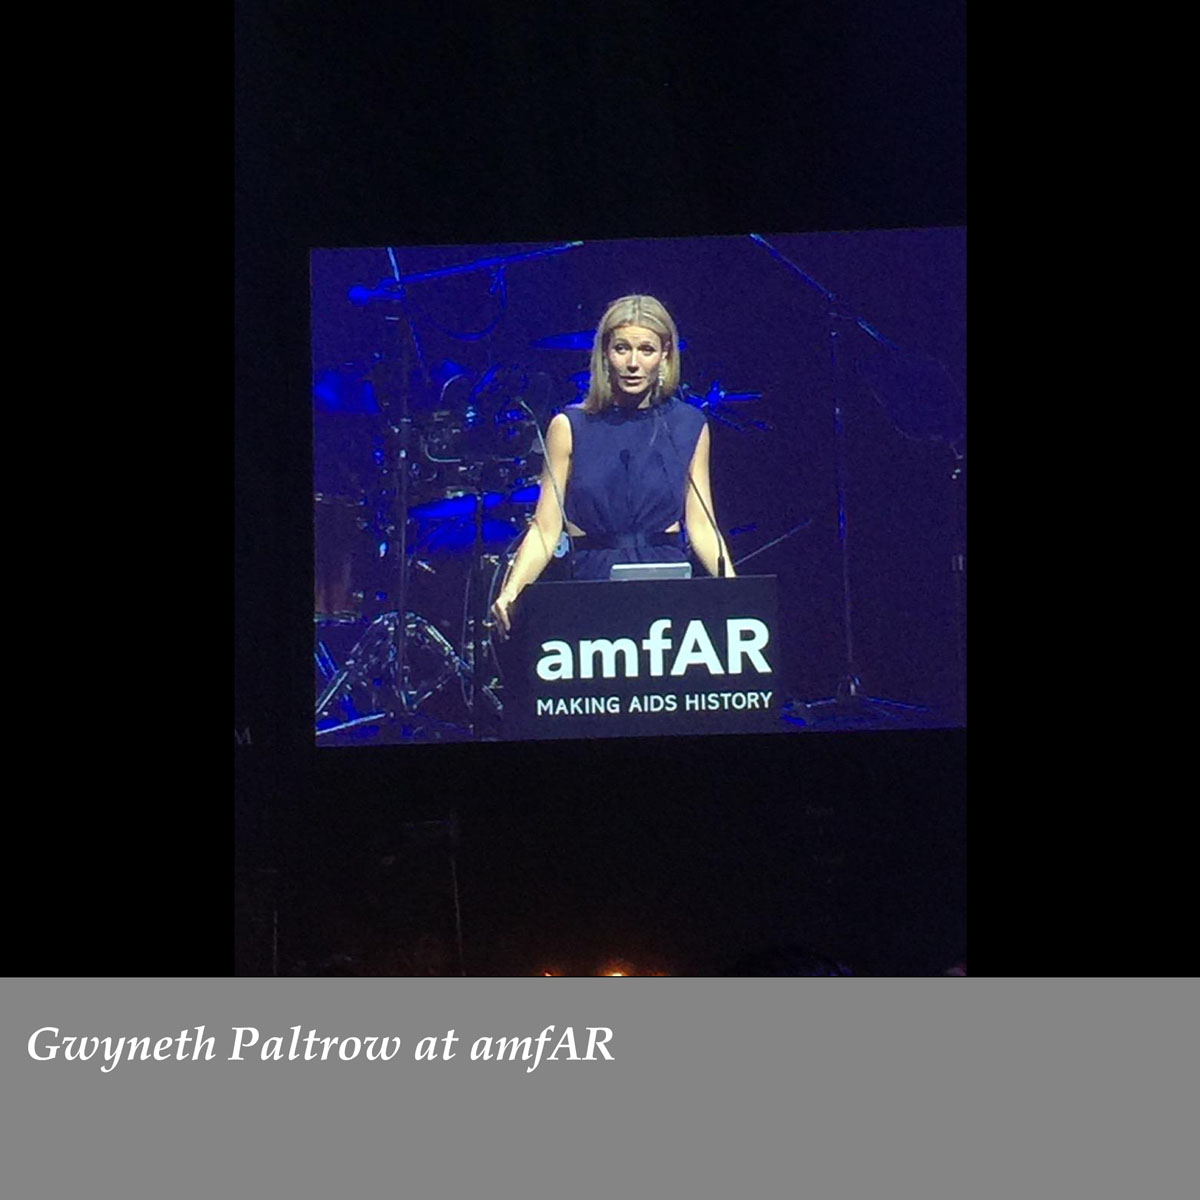 Gwyneth-Paltrow-at-amfAR